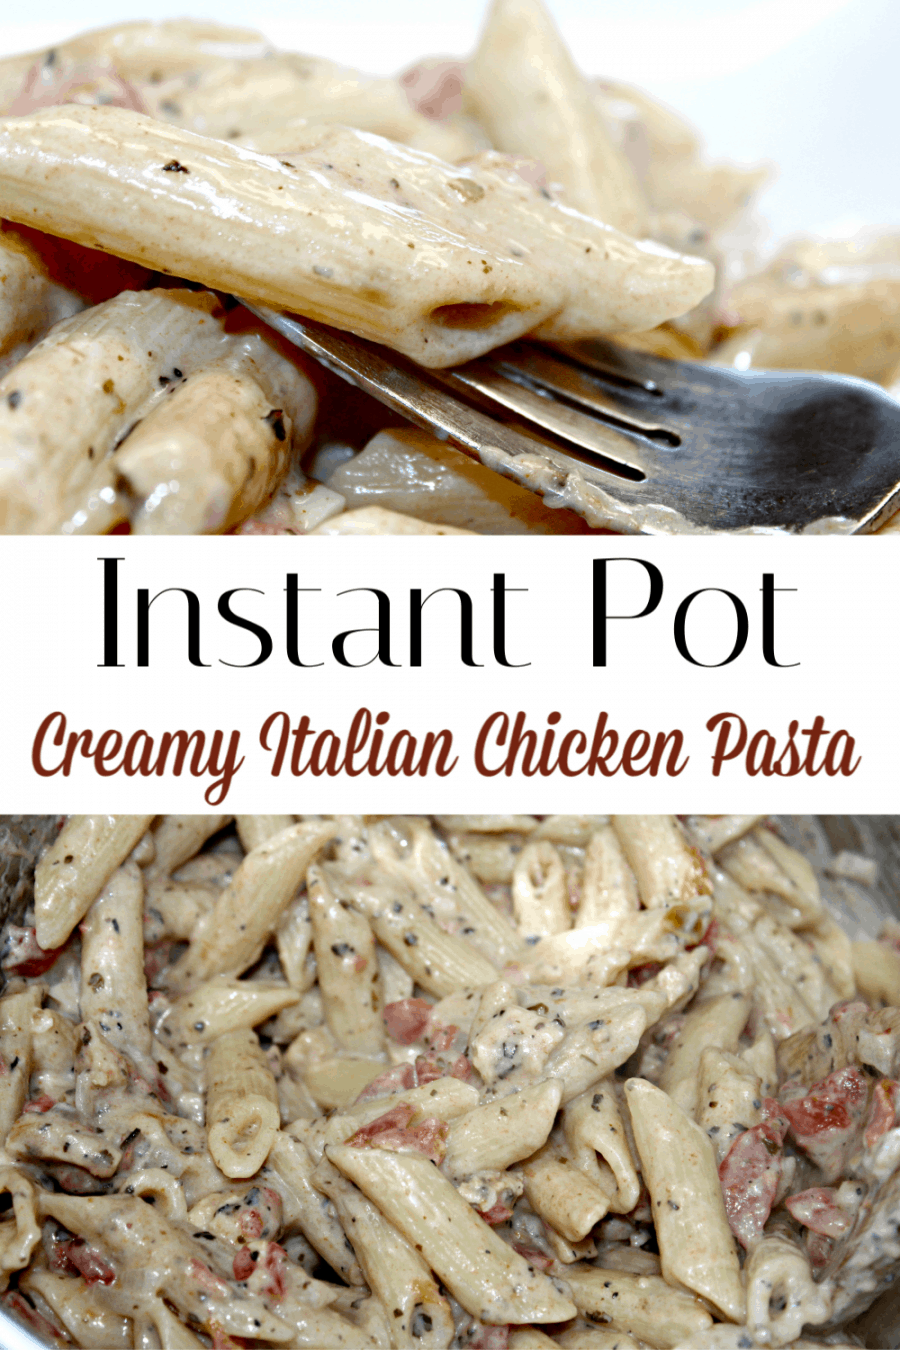 Instant Pot Creamy Italian Chicken Pasta Recipe